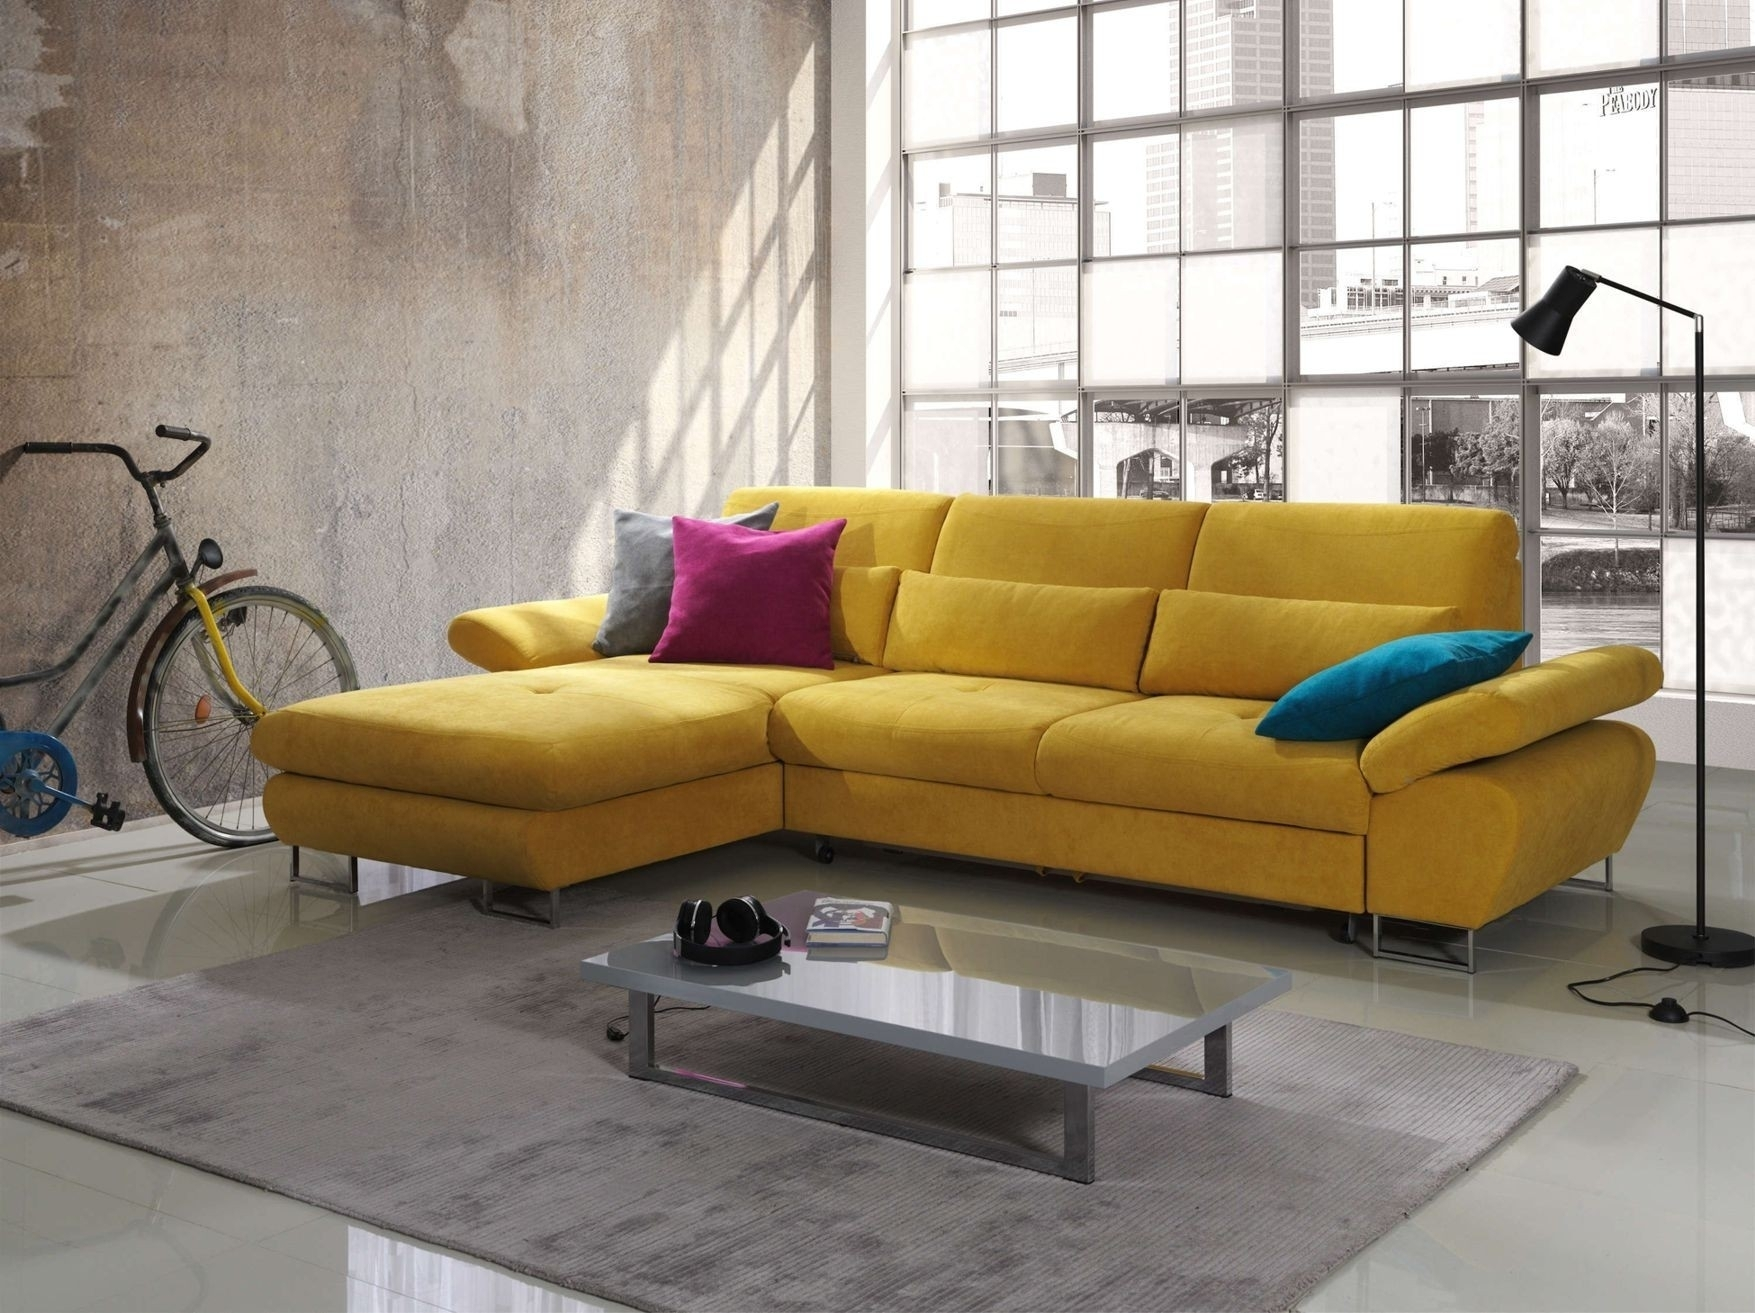 Best Apartment Sectional Sofa With Chaise Images – Liltigertoo With Apartment Sectional Sofas With Chaise (View 3 of 10)